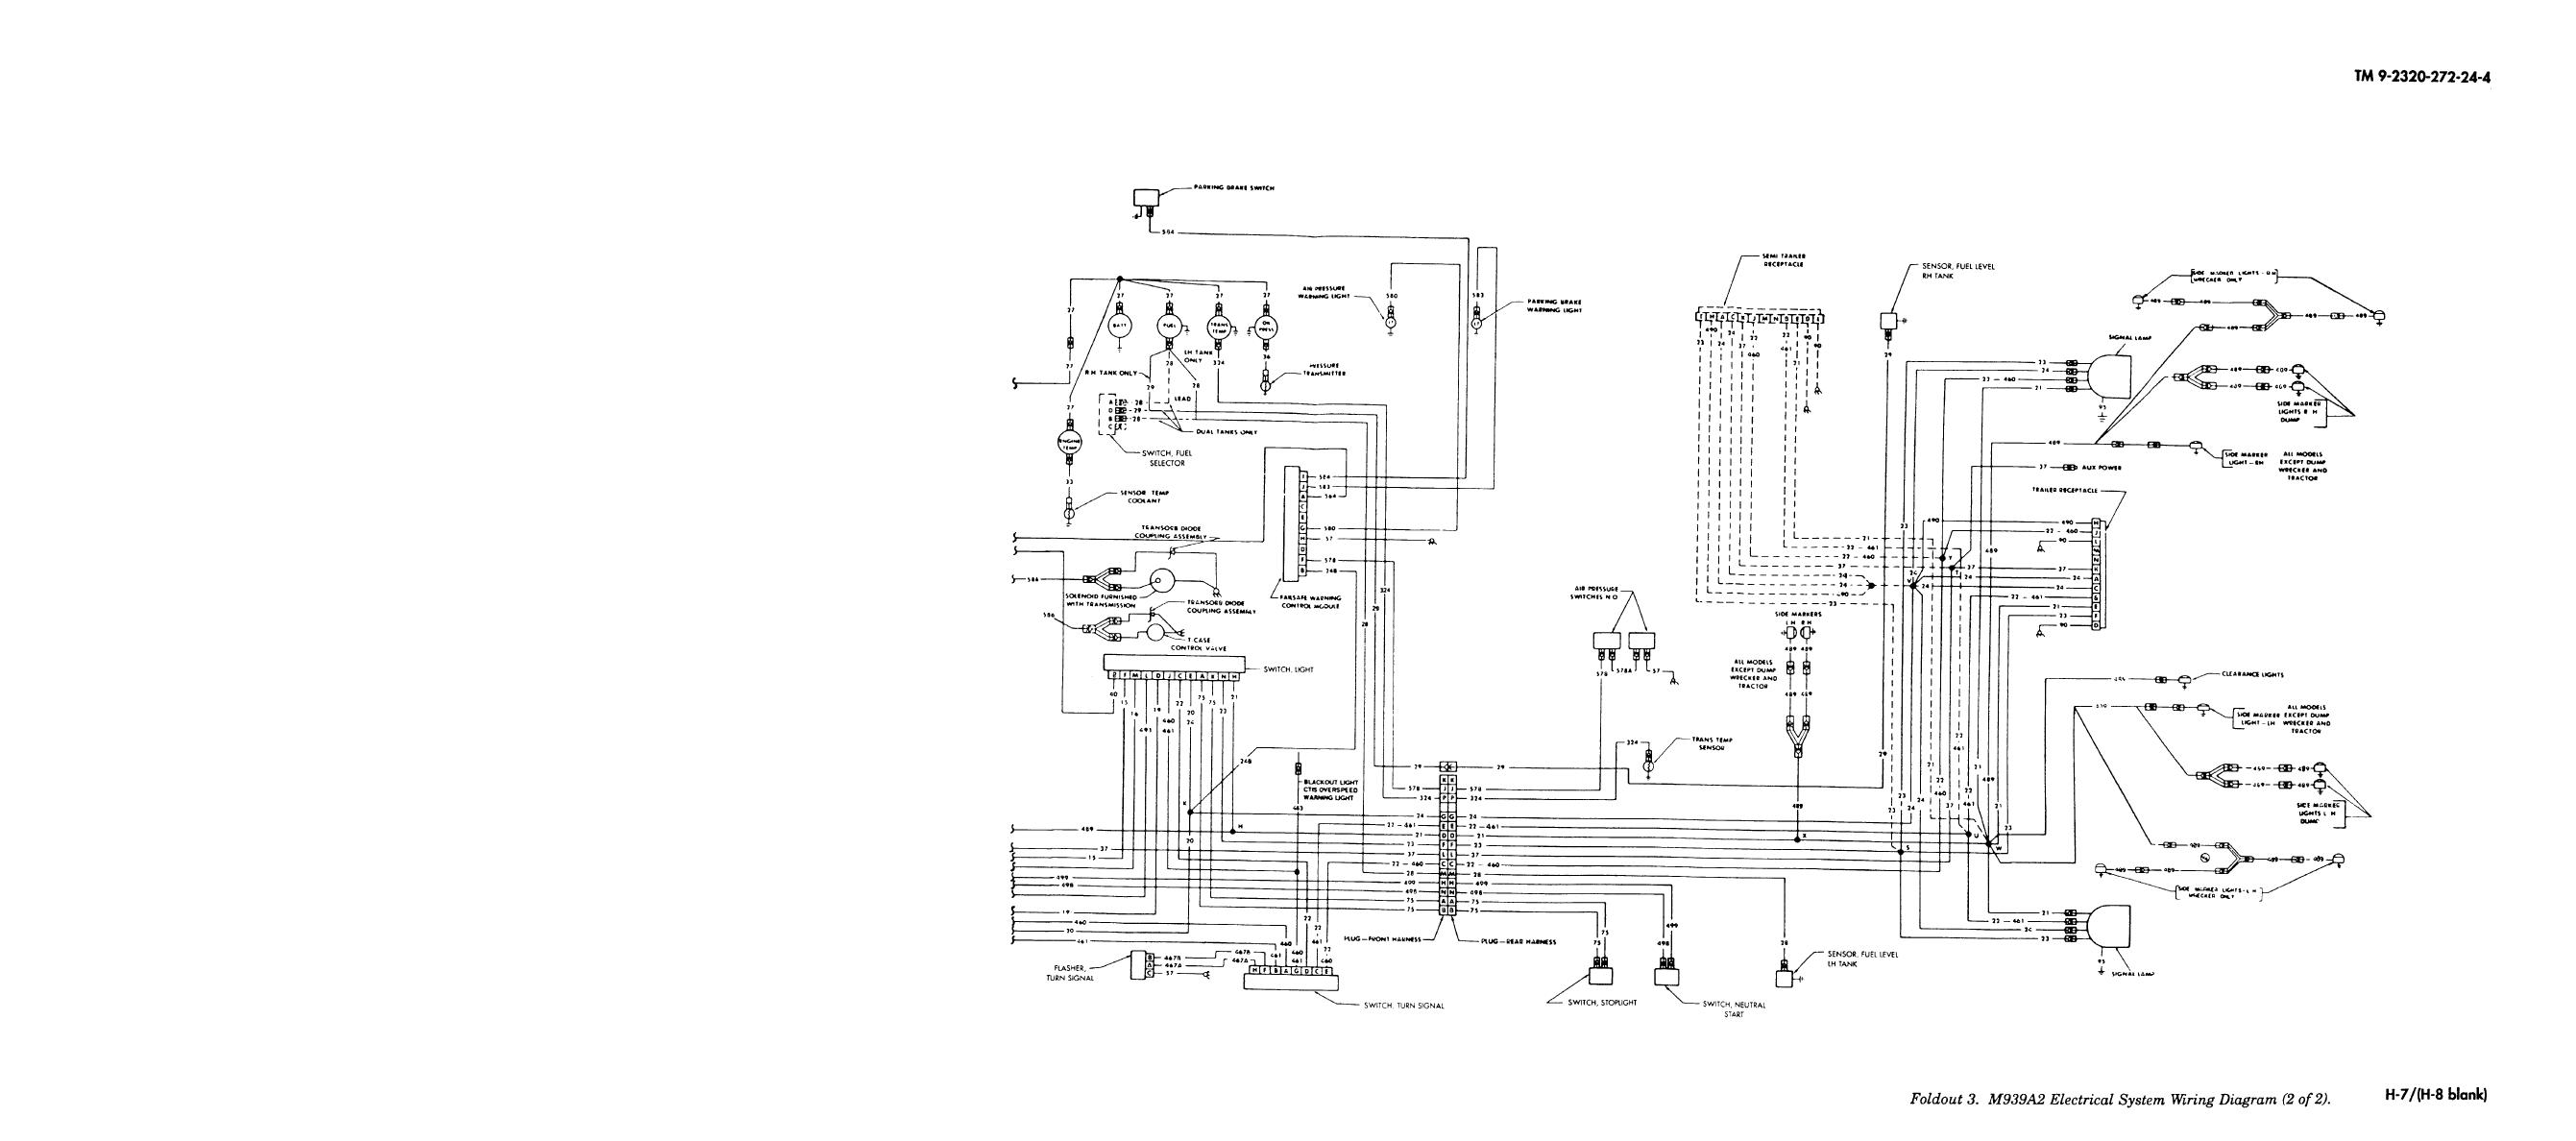 foldout 3  m939a2 electrical system wiring diagram  2 of 2